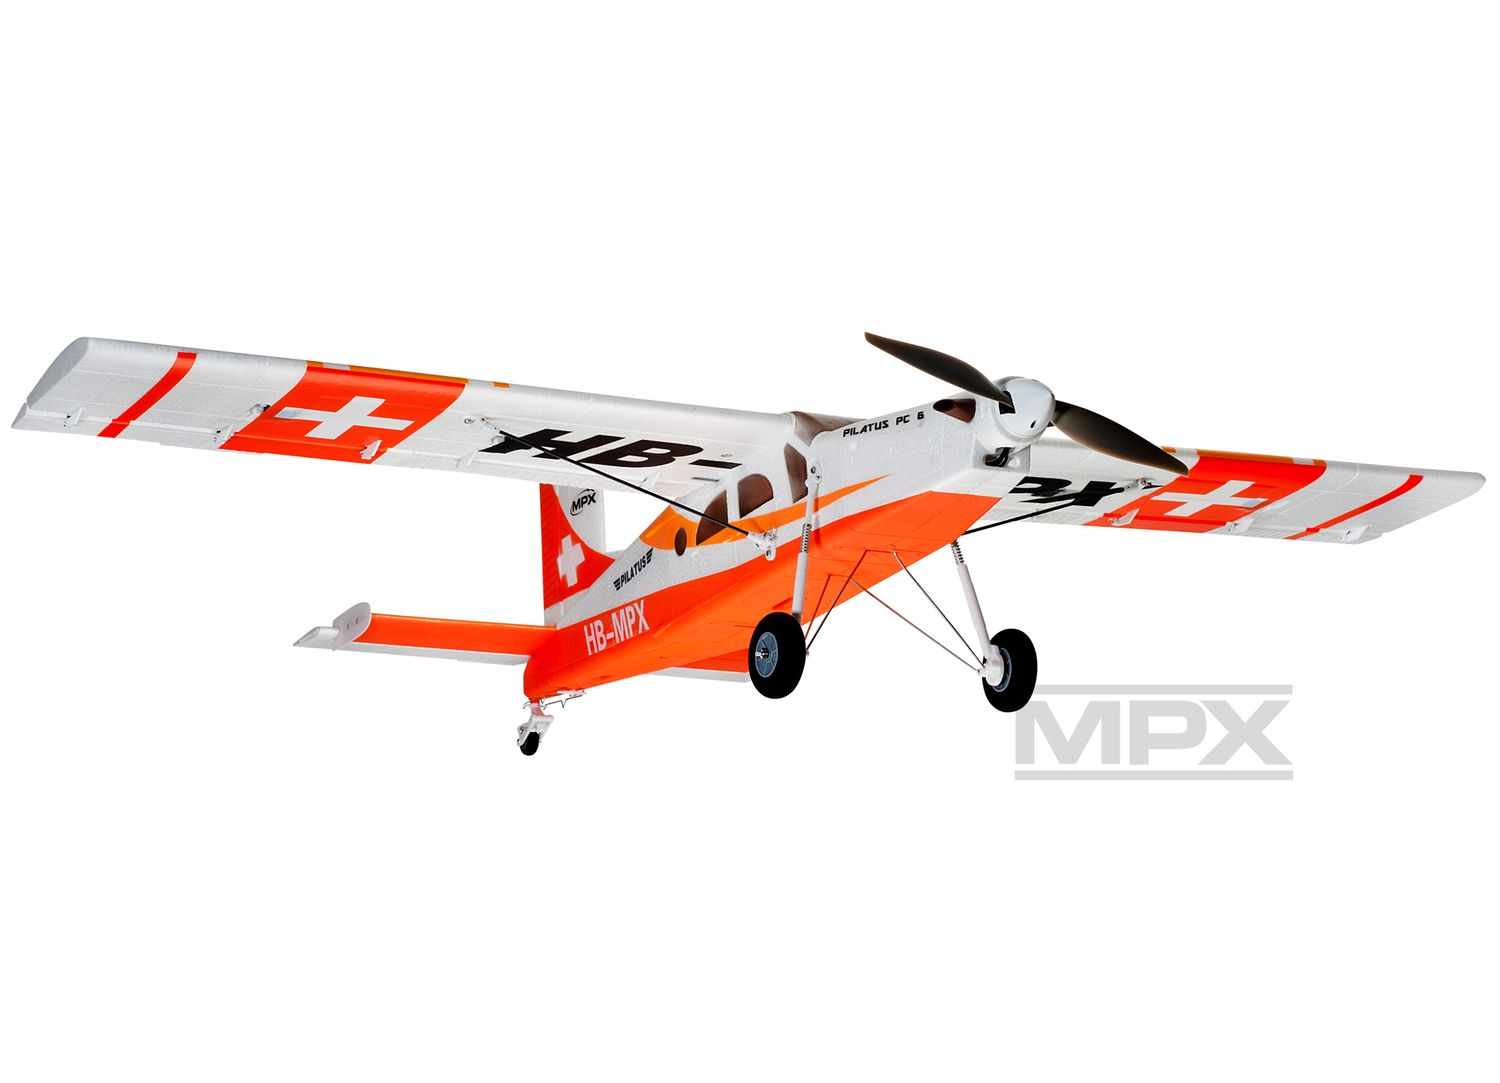 Pilatus PC-6 Turbo Porter Multiplex